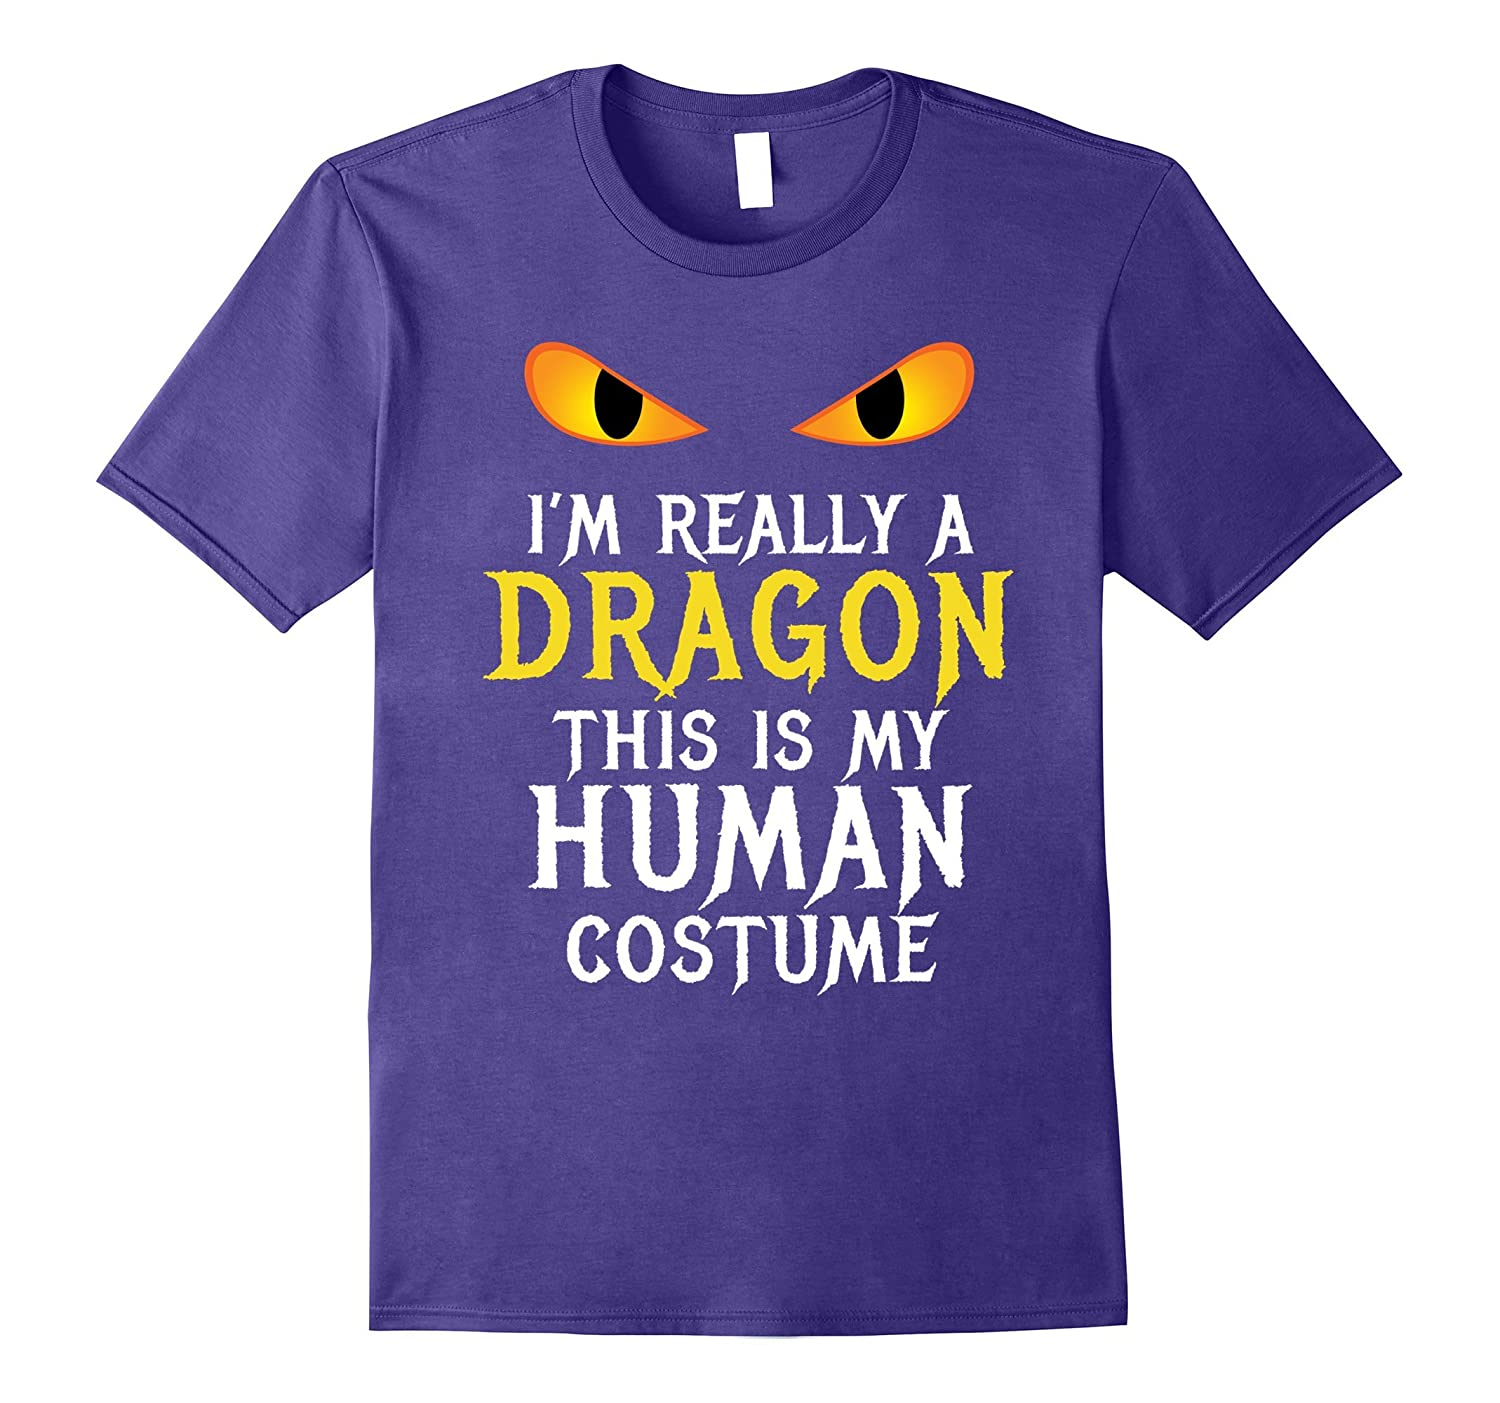 ca682557 I'm Really A Dragon Halloween Costume Shirt Easy Funny- TPT - Best Selling  T-Shirts